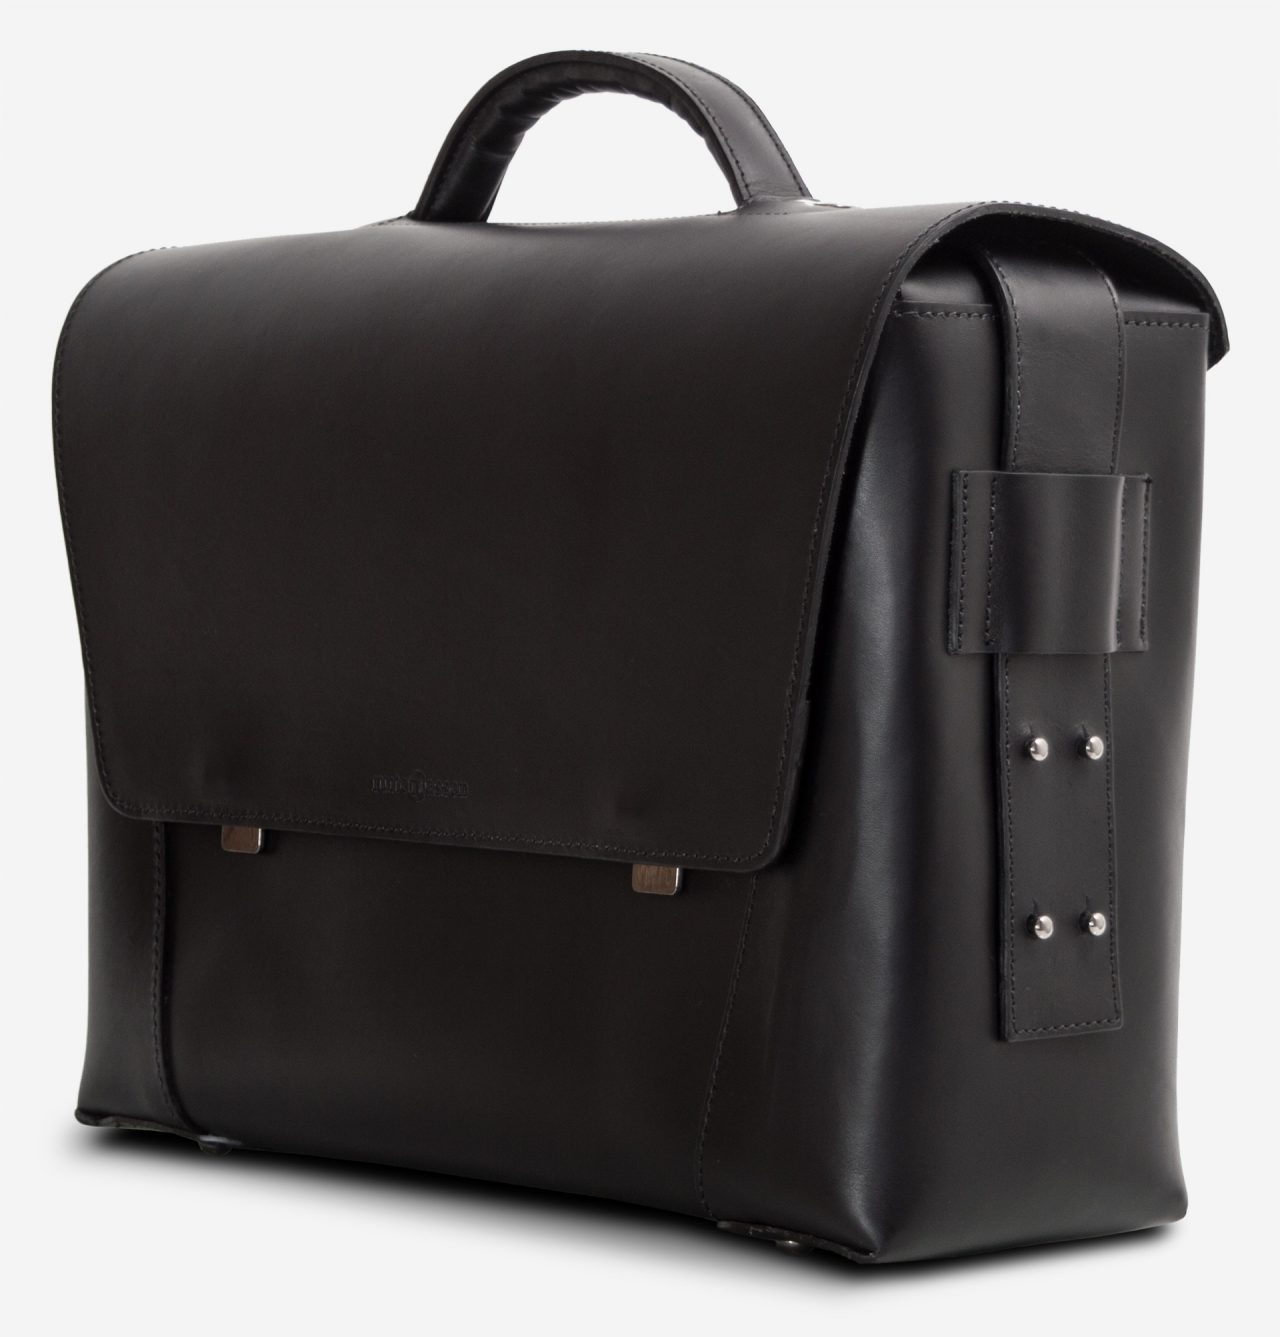 Side view of the large black vegetable-tanned leather briefcase bag with laptop pocket.